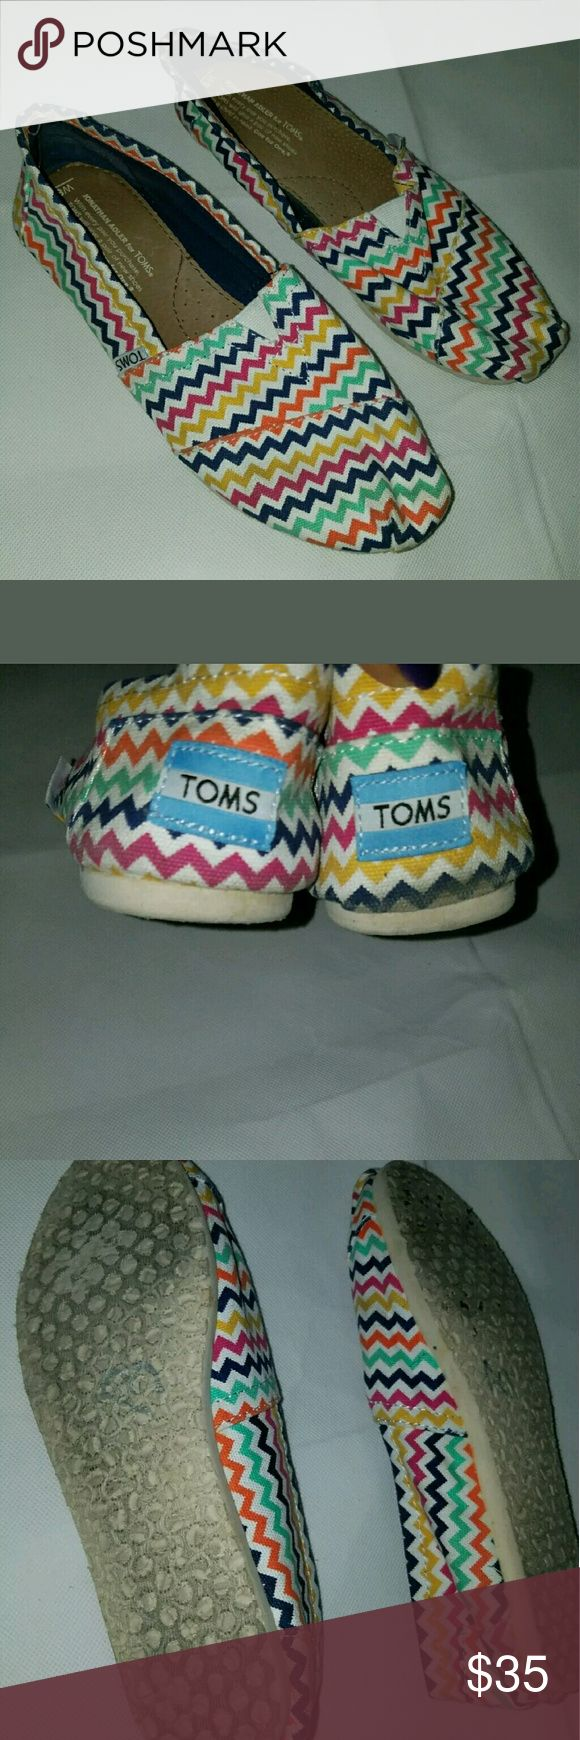 Women's TOMS Chevron Print Shoes Shoes in good used condition.   AB TOMS Shoes Flats & Loafers